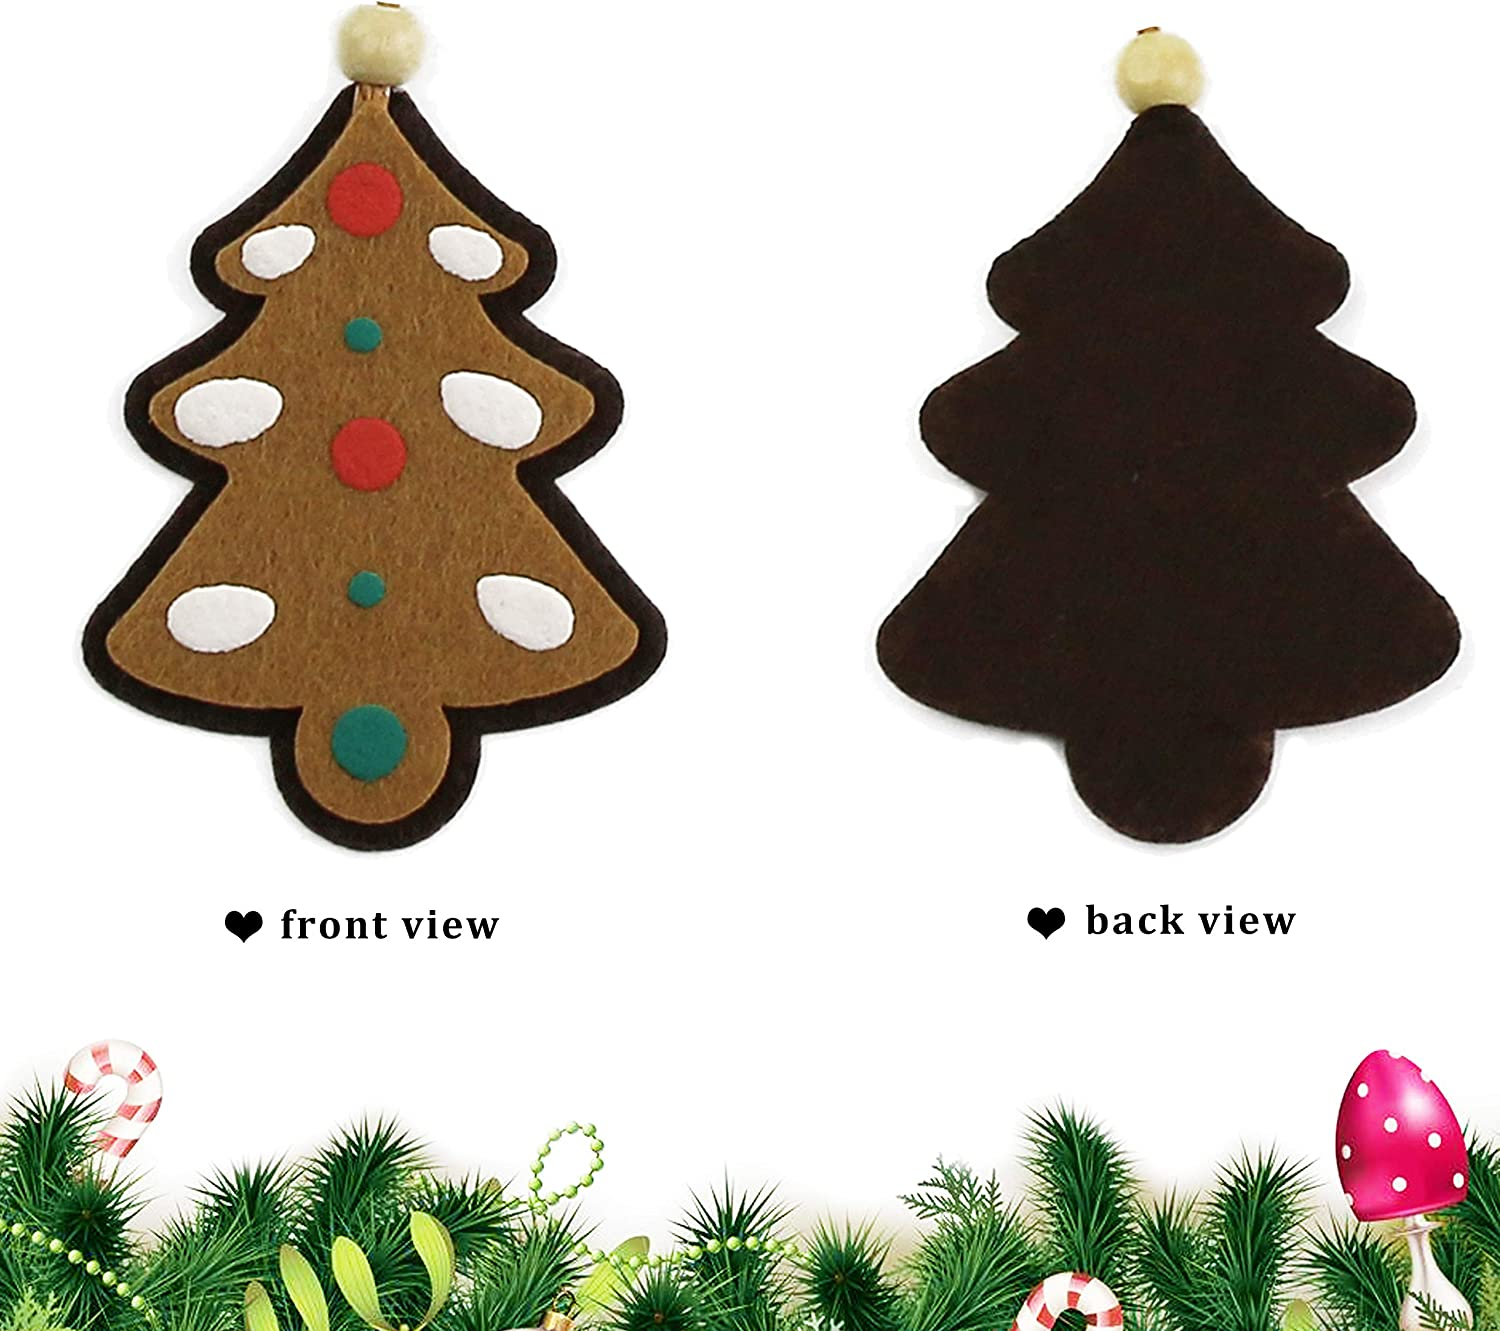 Athoinsu 10pcs Vintage Assorted Christmas Tree Decorations Cloth Gingerbread Snowflake Star Xmas Tree Stocking Bell Elk Hanging Home Ornaments Holiday Party Seasonal Decor Sets of 10 PCS Style 1